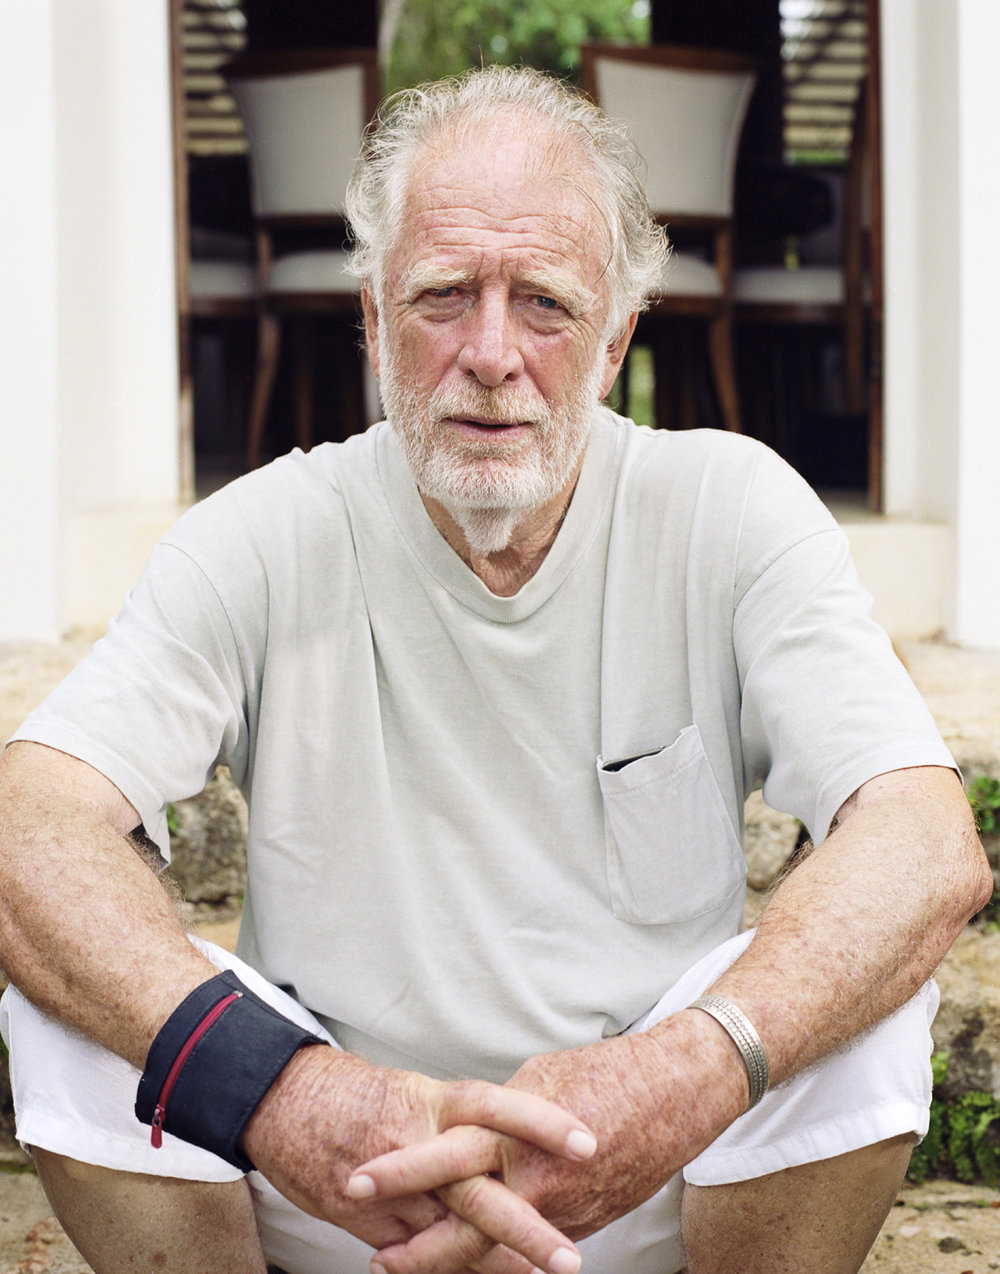 Chris Blackwell's Jamaica - The Island Records founder and hotelier shares his love for Jamaica through his latest homegrown hit—his farm.Commissioned by WSJ. Magazine